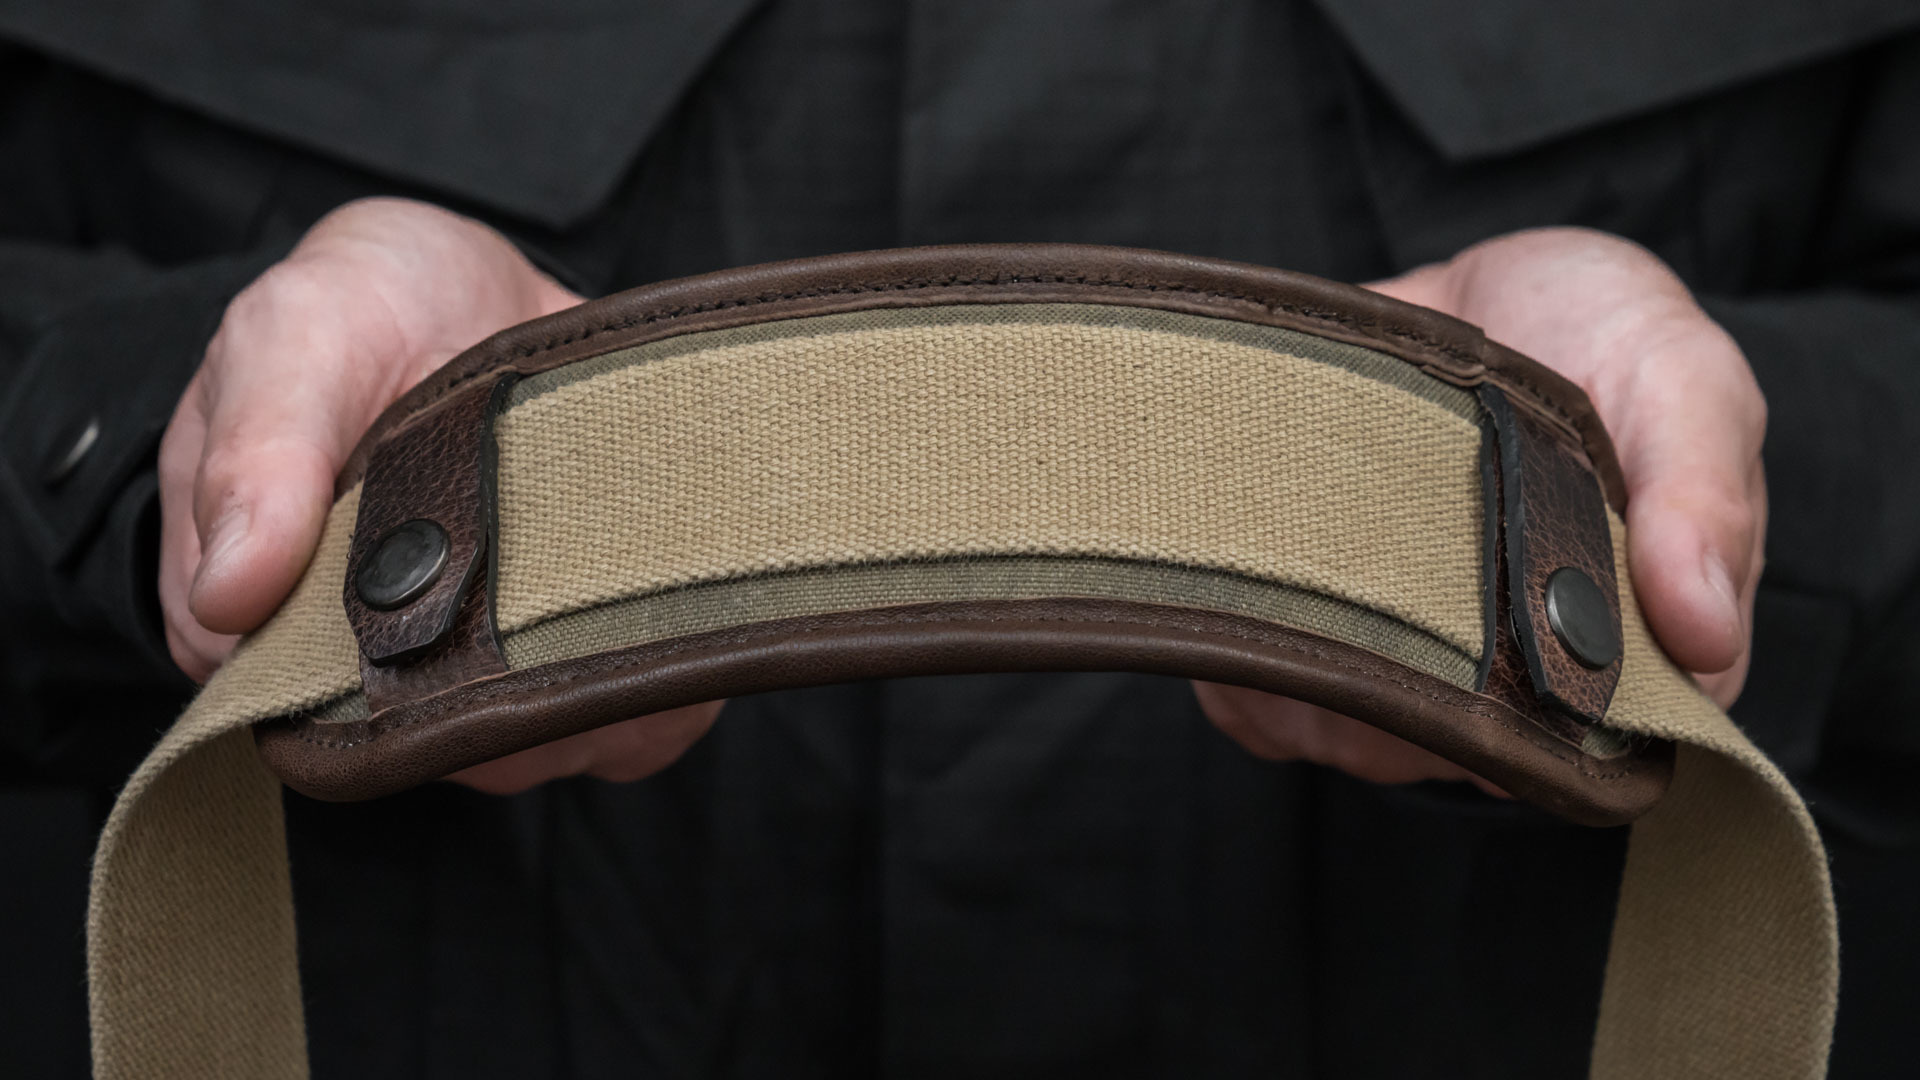 Latex foam embedded shoulder strap pad.